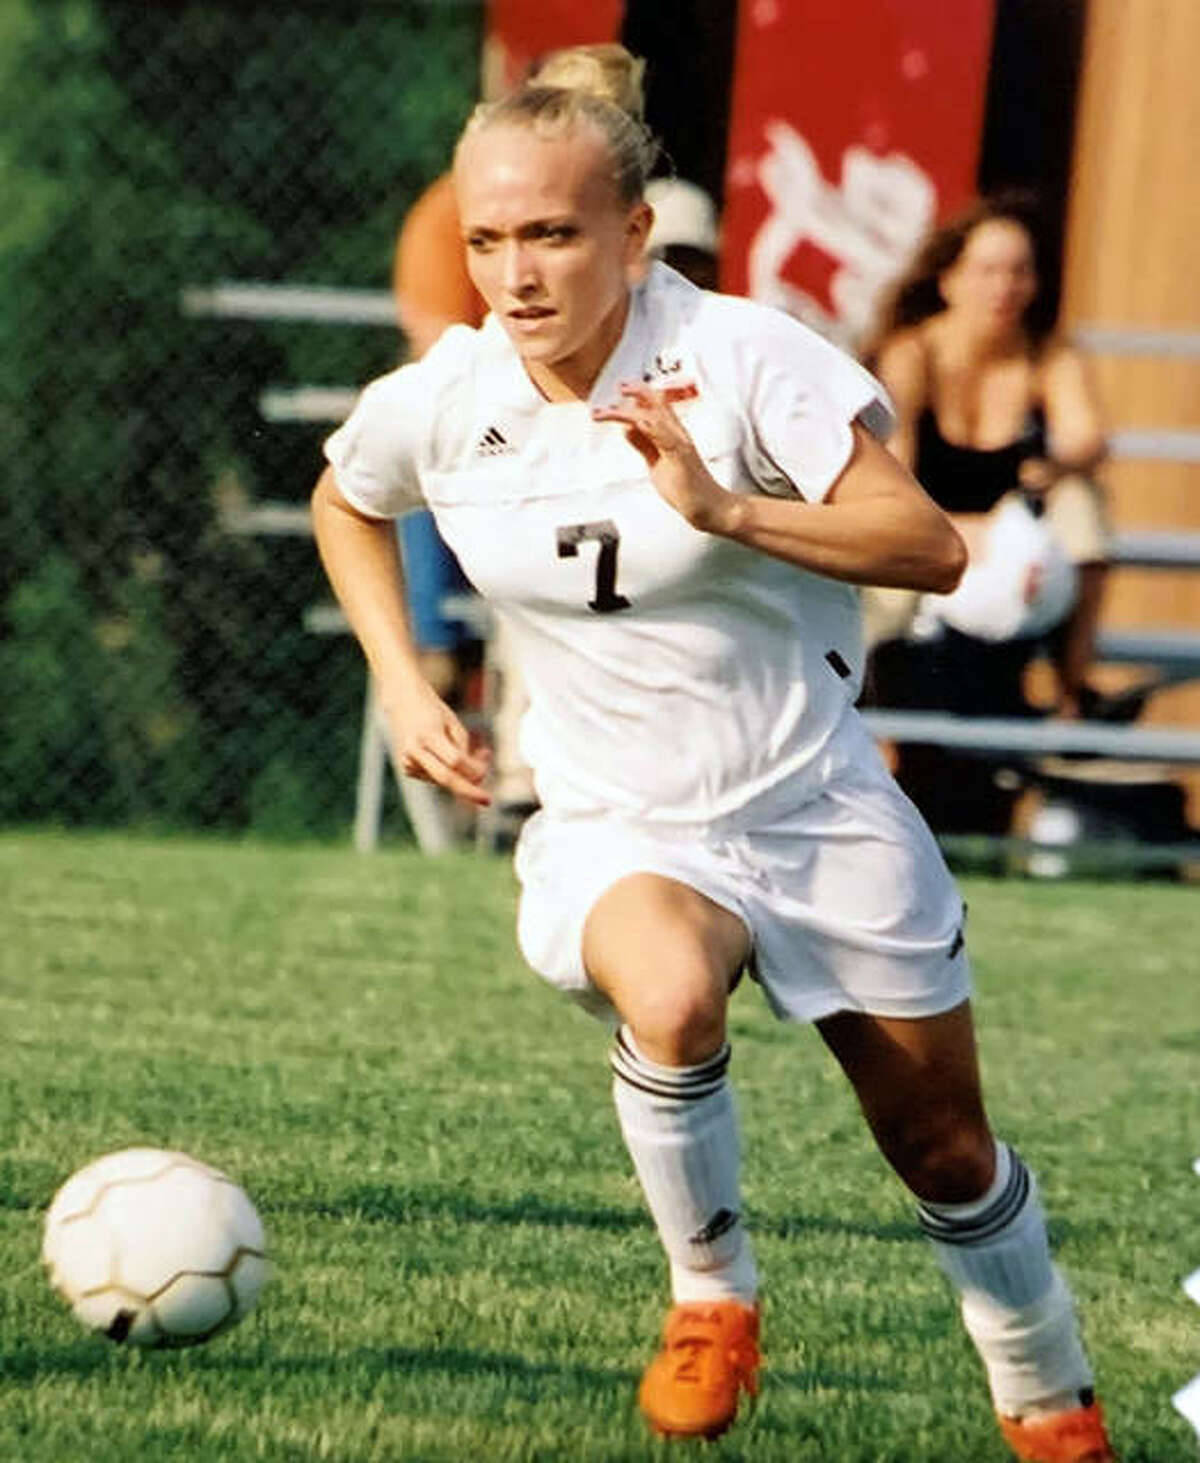 Edwardsville's Amanda (Dowdy) Coyle earned All-State honors as a senior in 2005 after helping the Tigers reach the Class AA state tournament in 2004.